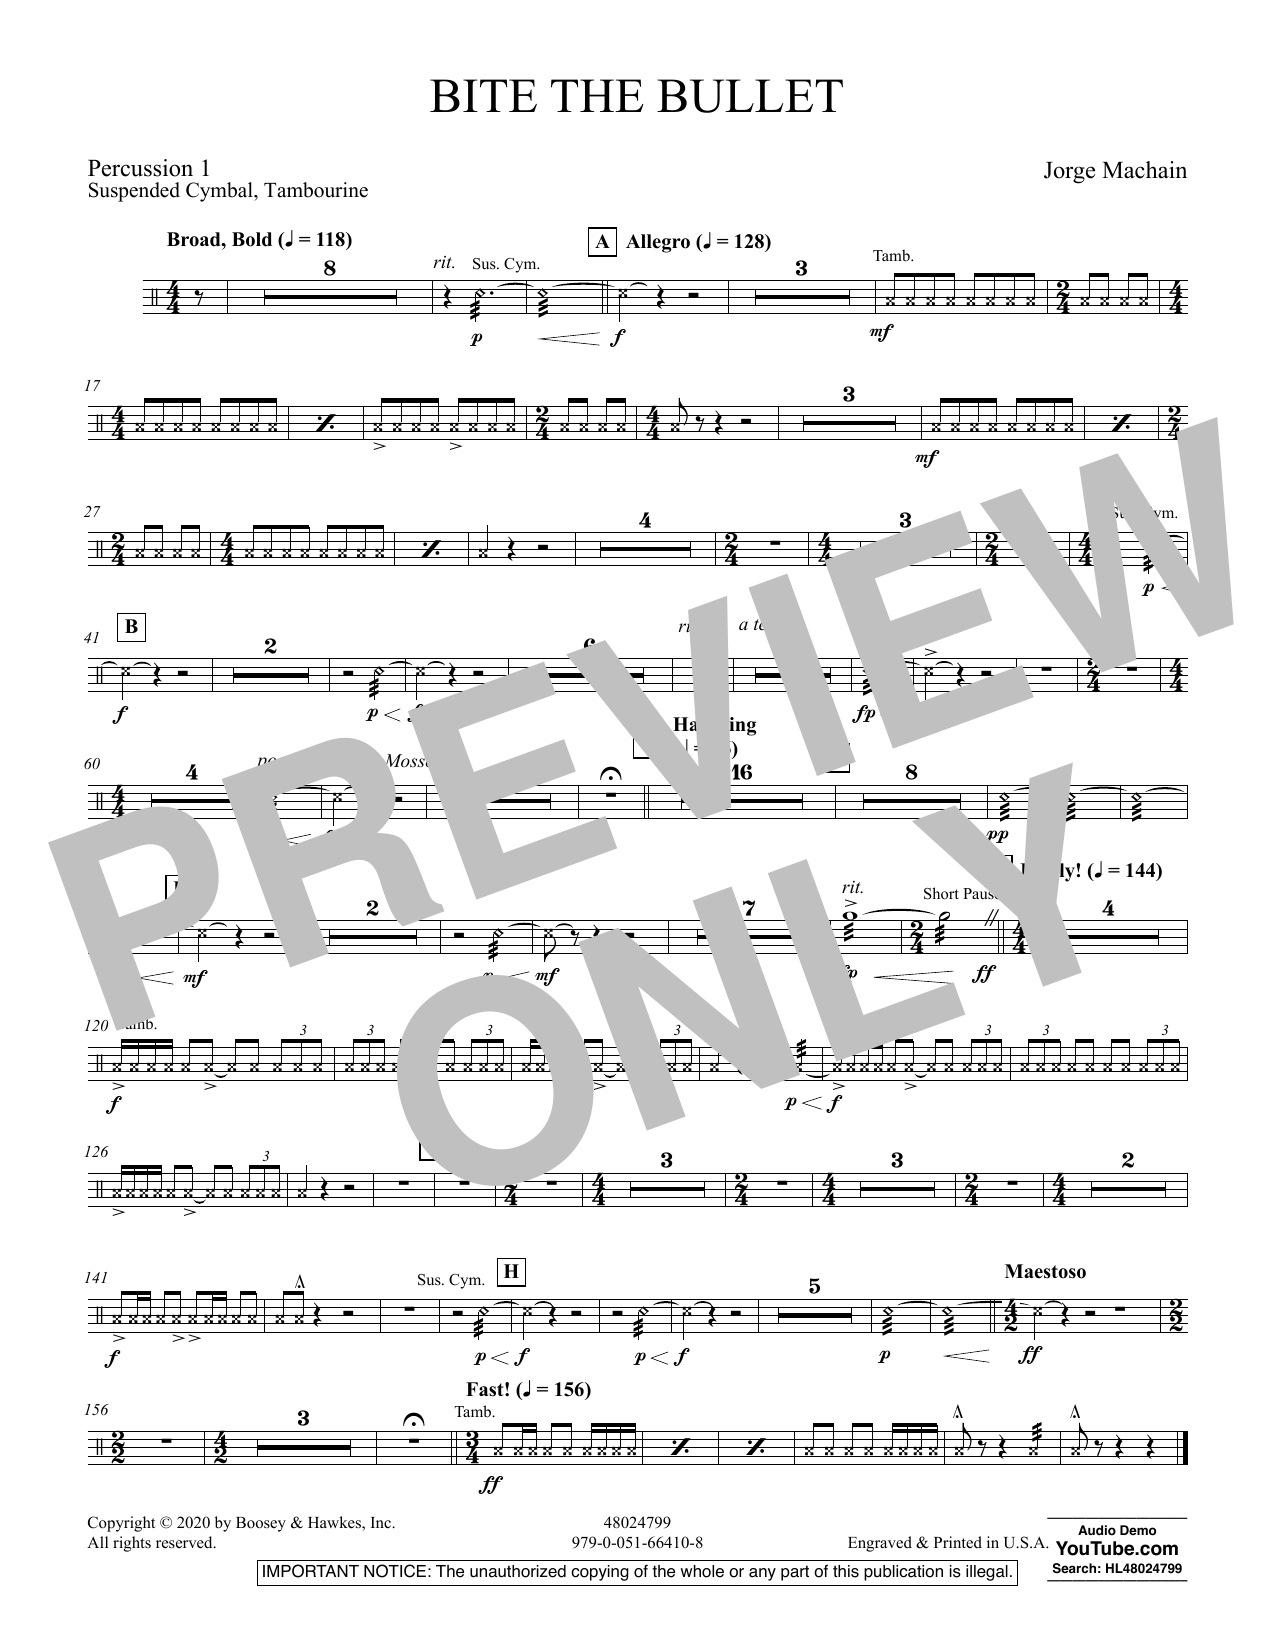 Jorge Machain Bite the Bullet - Percussion 1 sheet music notes and chords. Download Printable PDF.